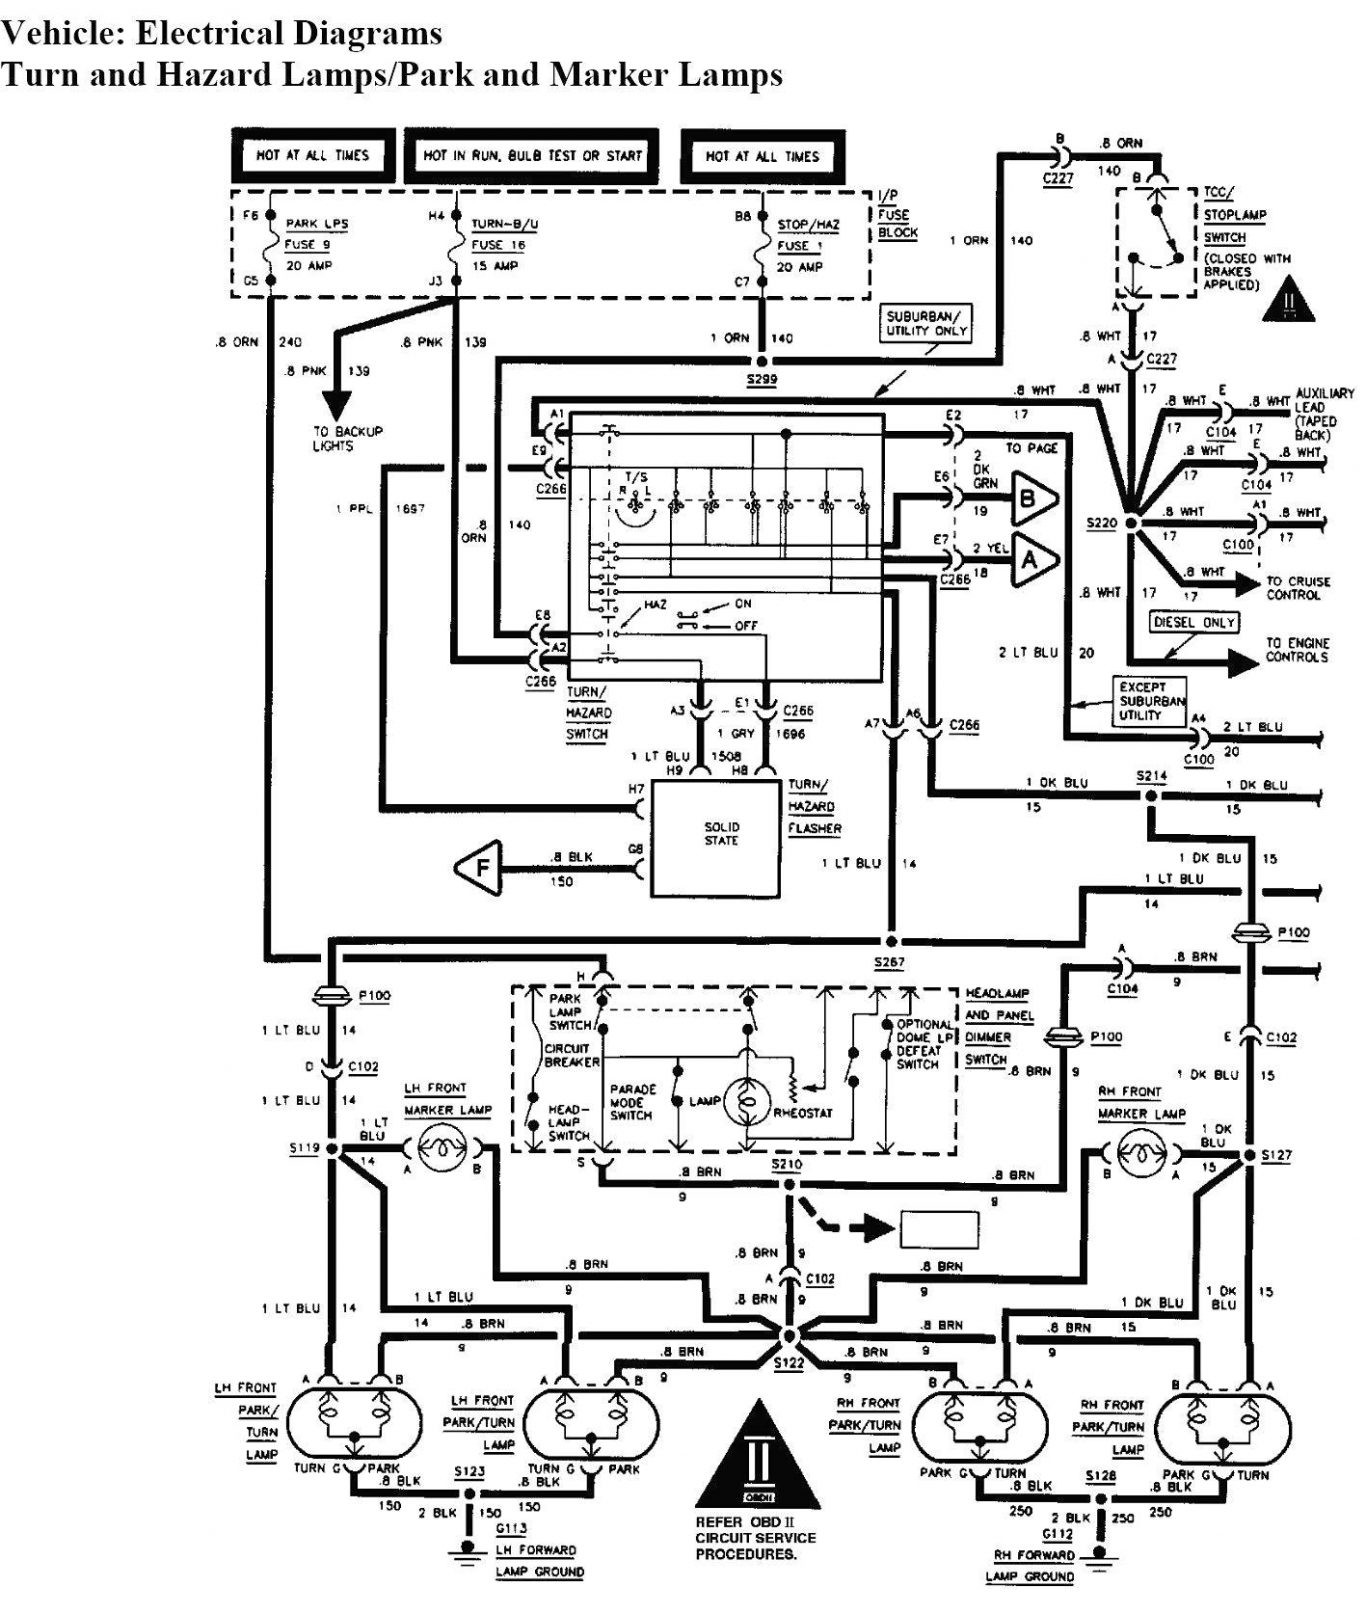 Electric Circuit Drawing At Free For Personal Use In Automotive Wiring Honda Tagged Diagram Electrical 1366x1614 A Dual Car Stereo Fresh Excellent Xpe2700